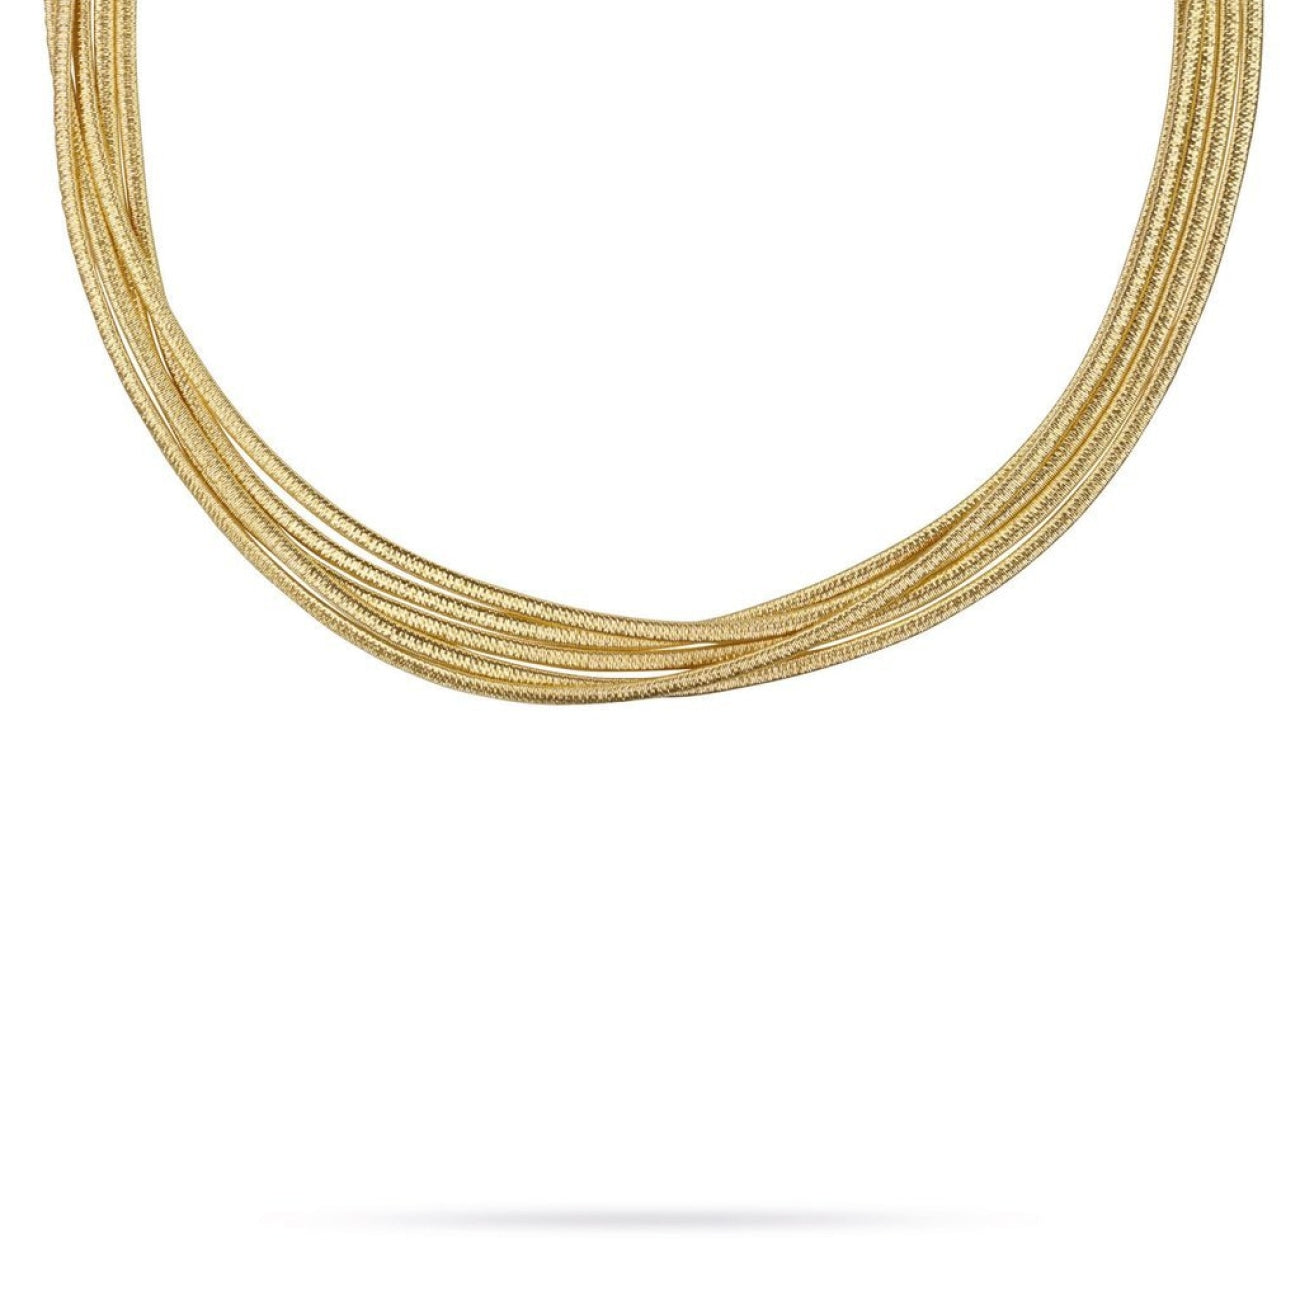 Marco Bicego Jewelry - 18K Yellow Gold Five Strand Woven Collar Necklace | Manfredi Jewels